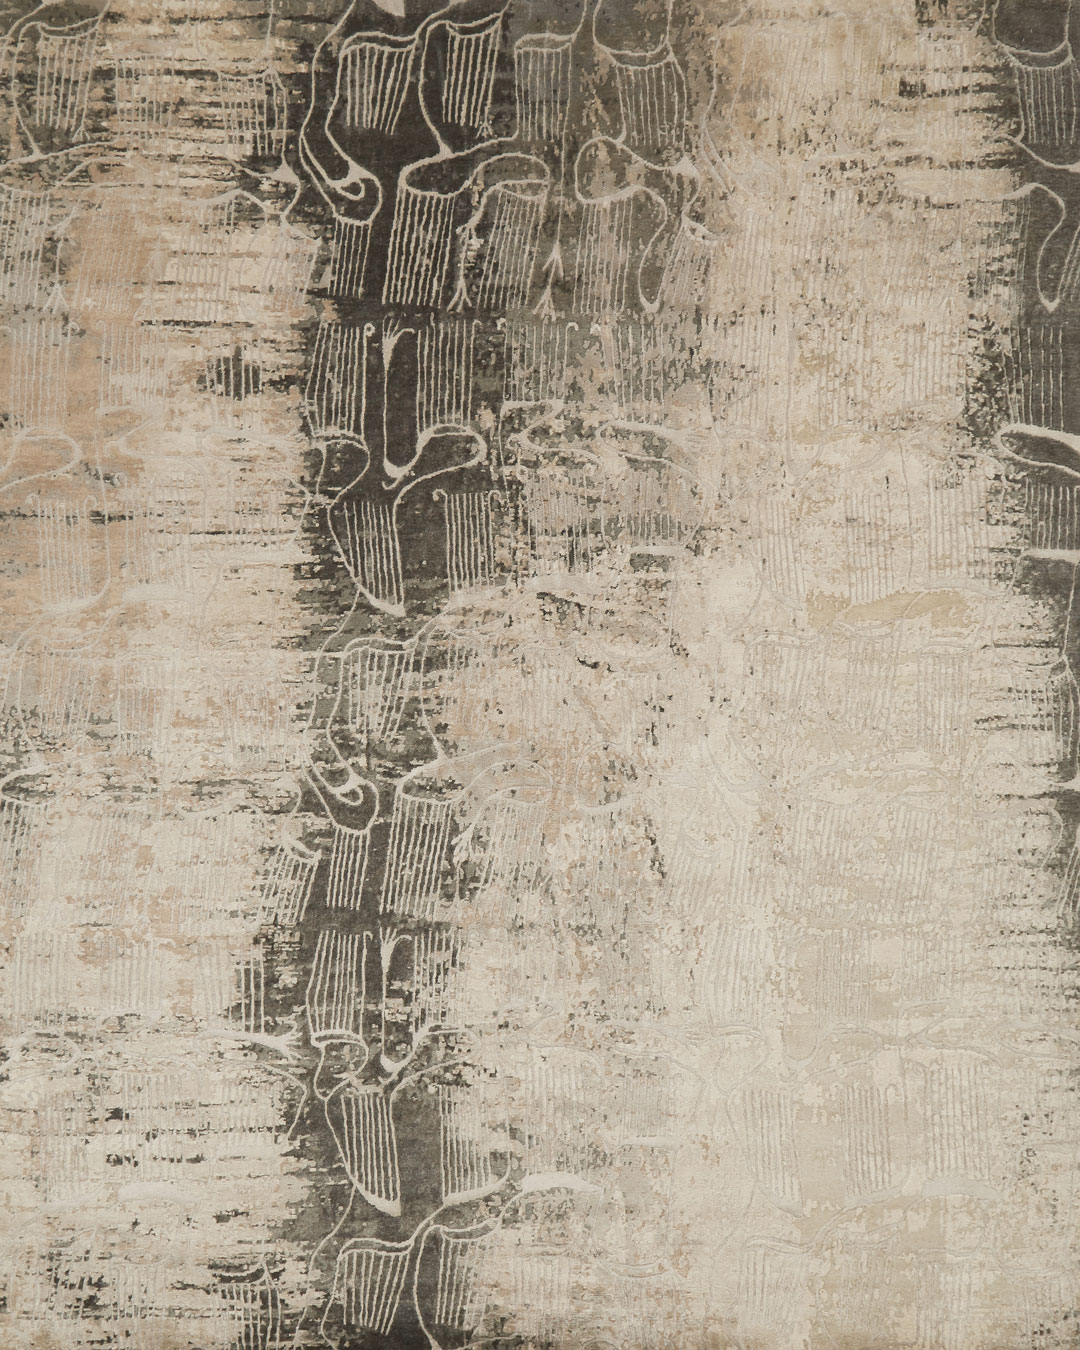 Overhead view of abstract Anubis rug in beige colour